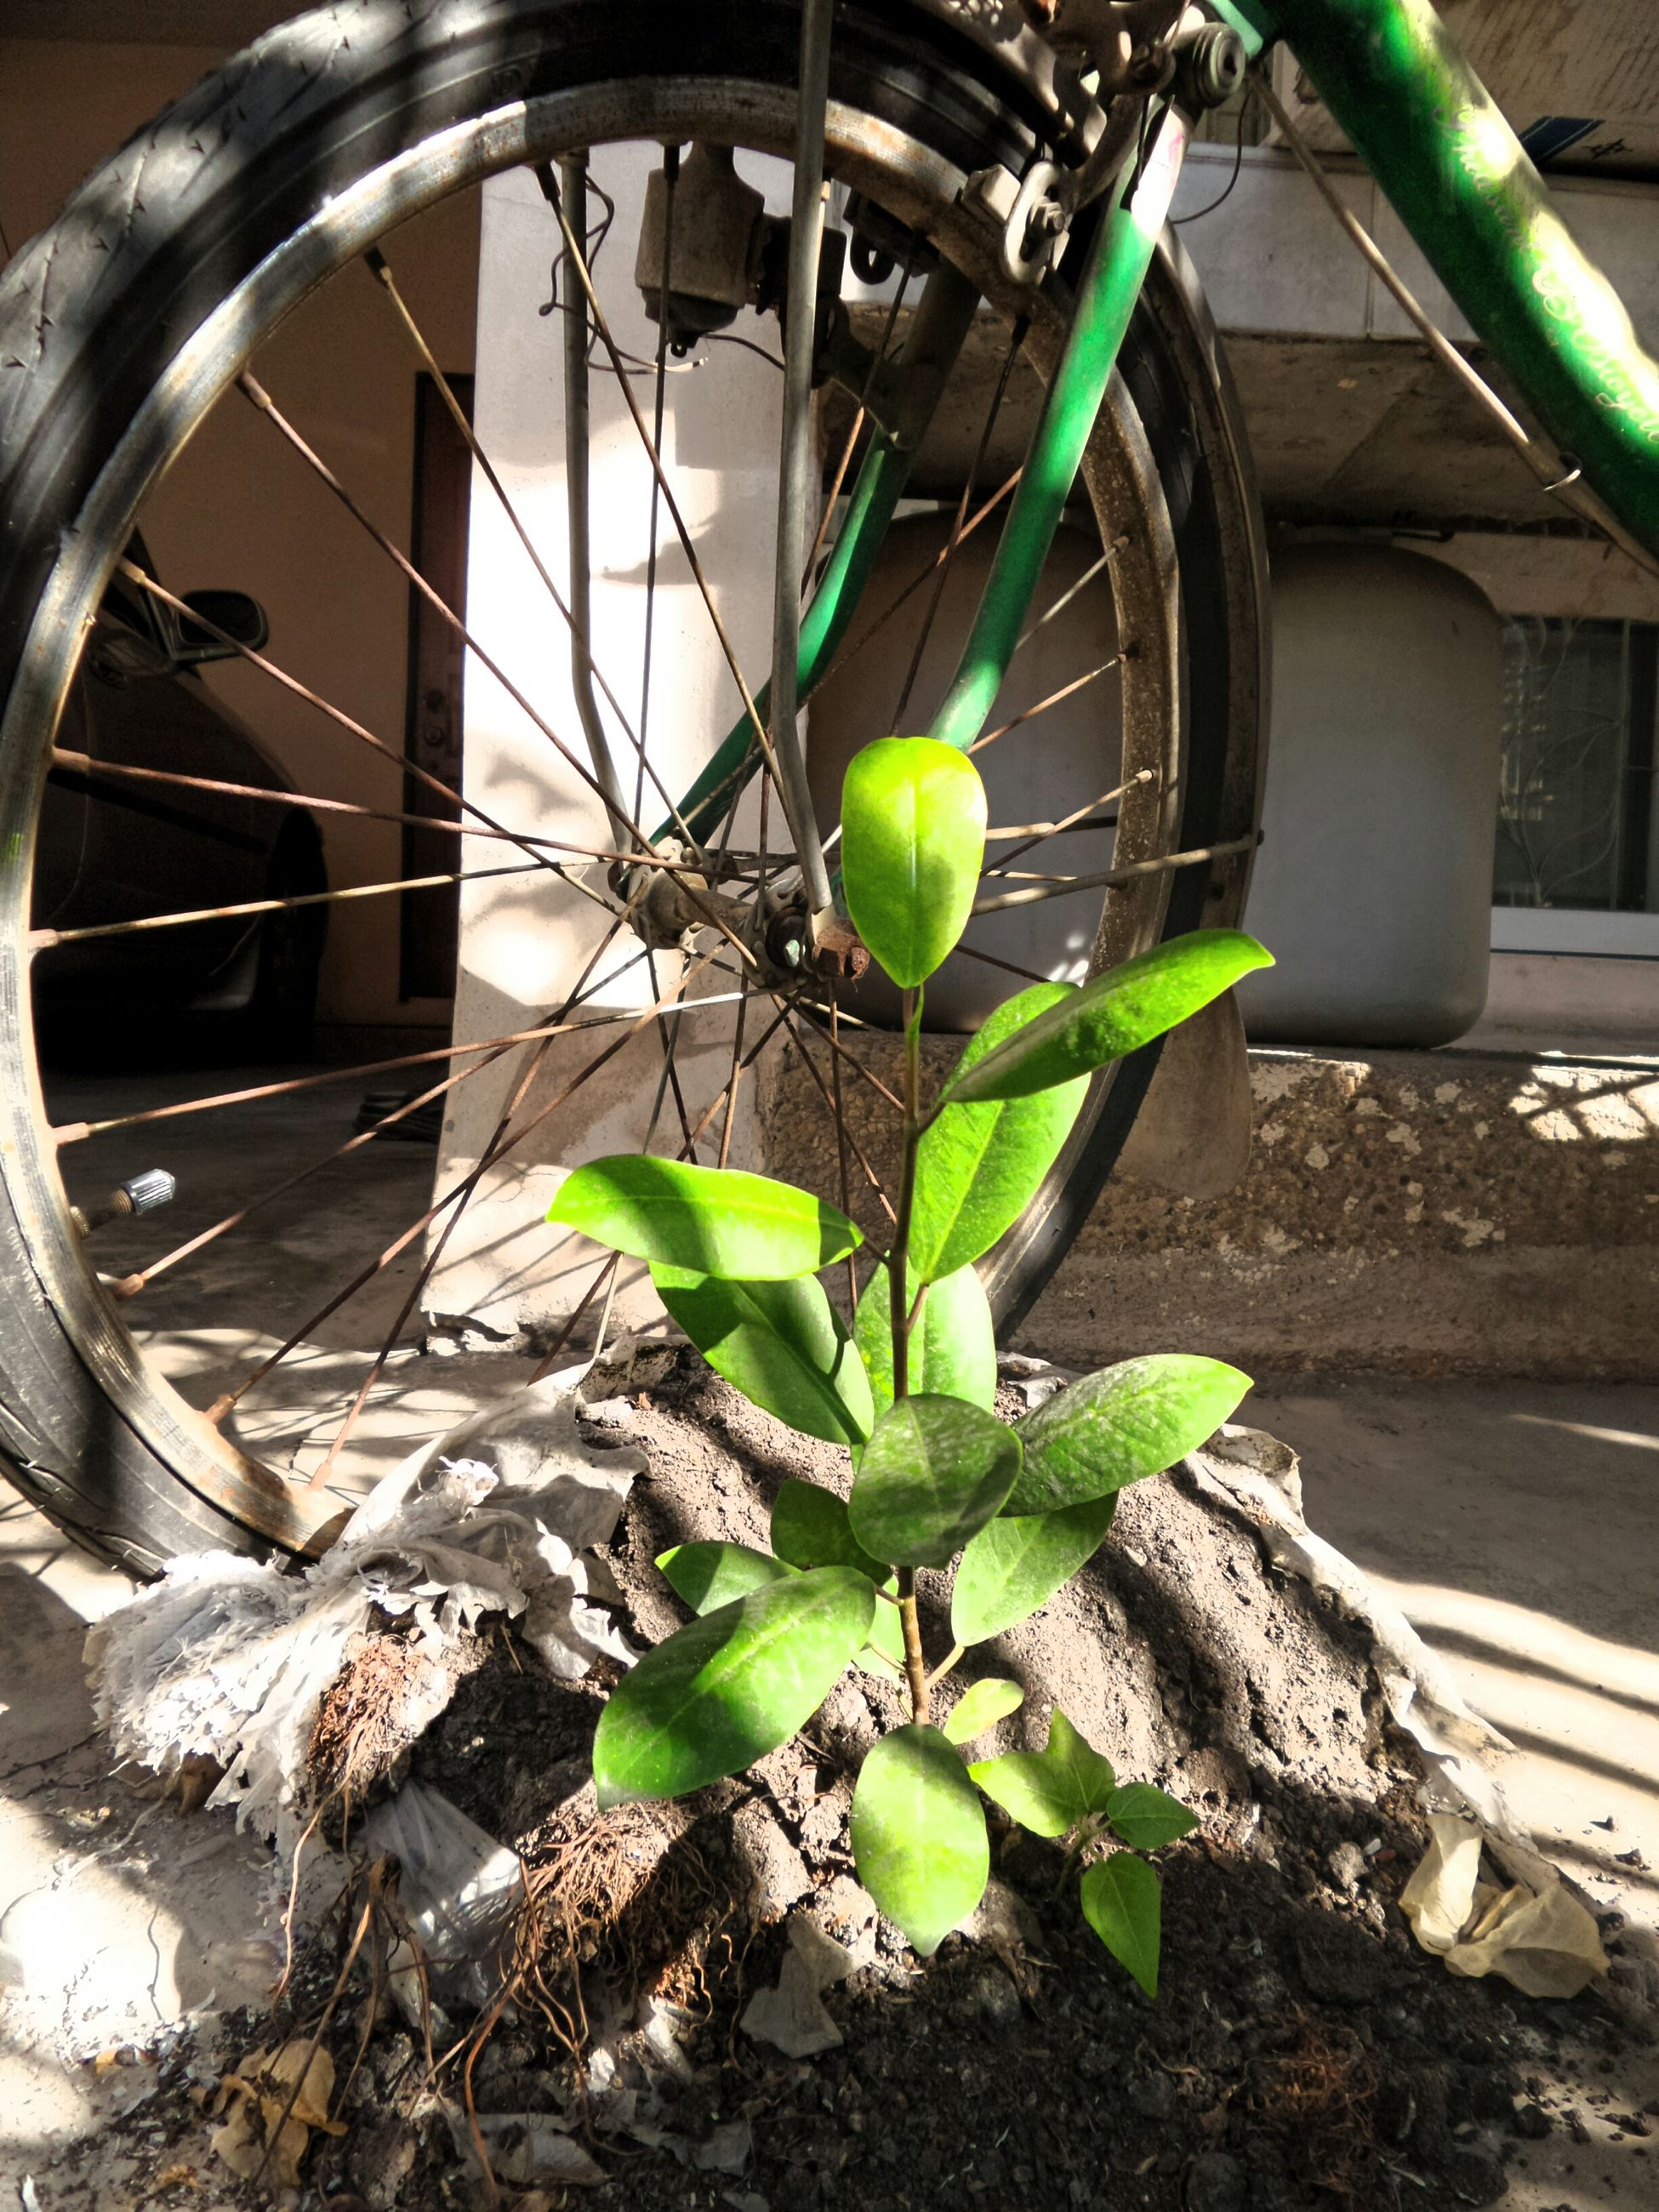 plant, built structure, wheel, architecture, growth, green color, transportation, building exterior, day, front or back yard, potted plant, close-up, no people, outdoors, bicycle, leaf, abandoned, wall - building feature, sunlight, street